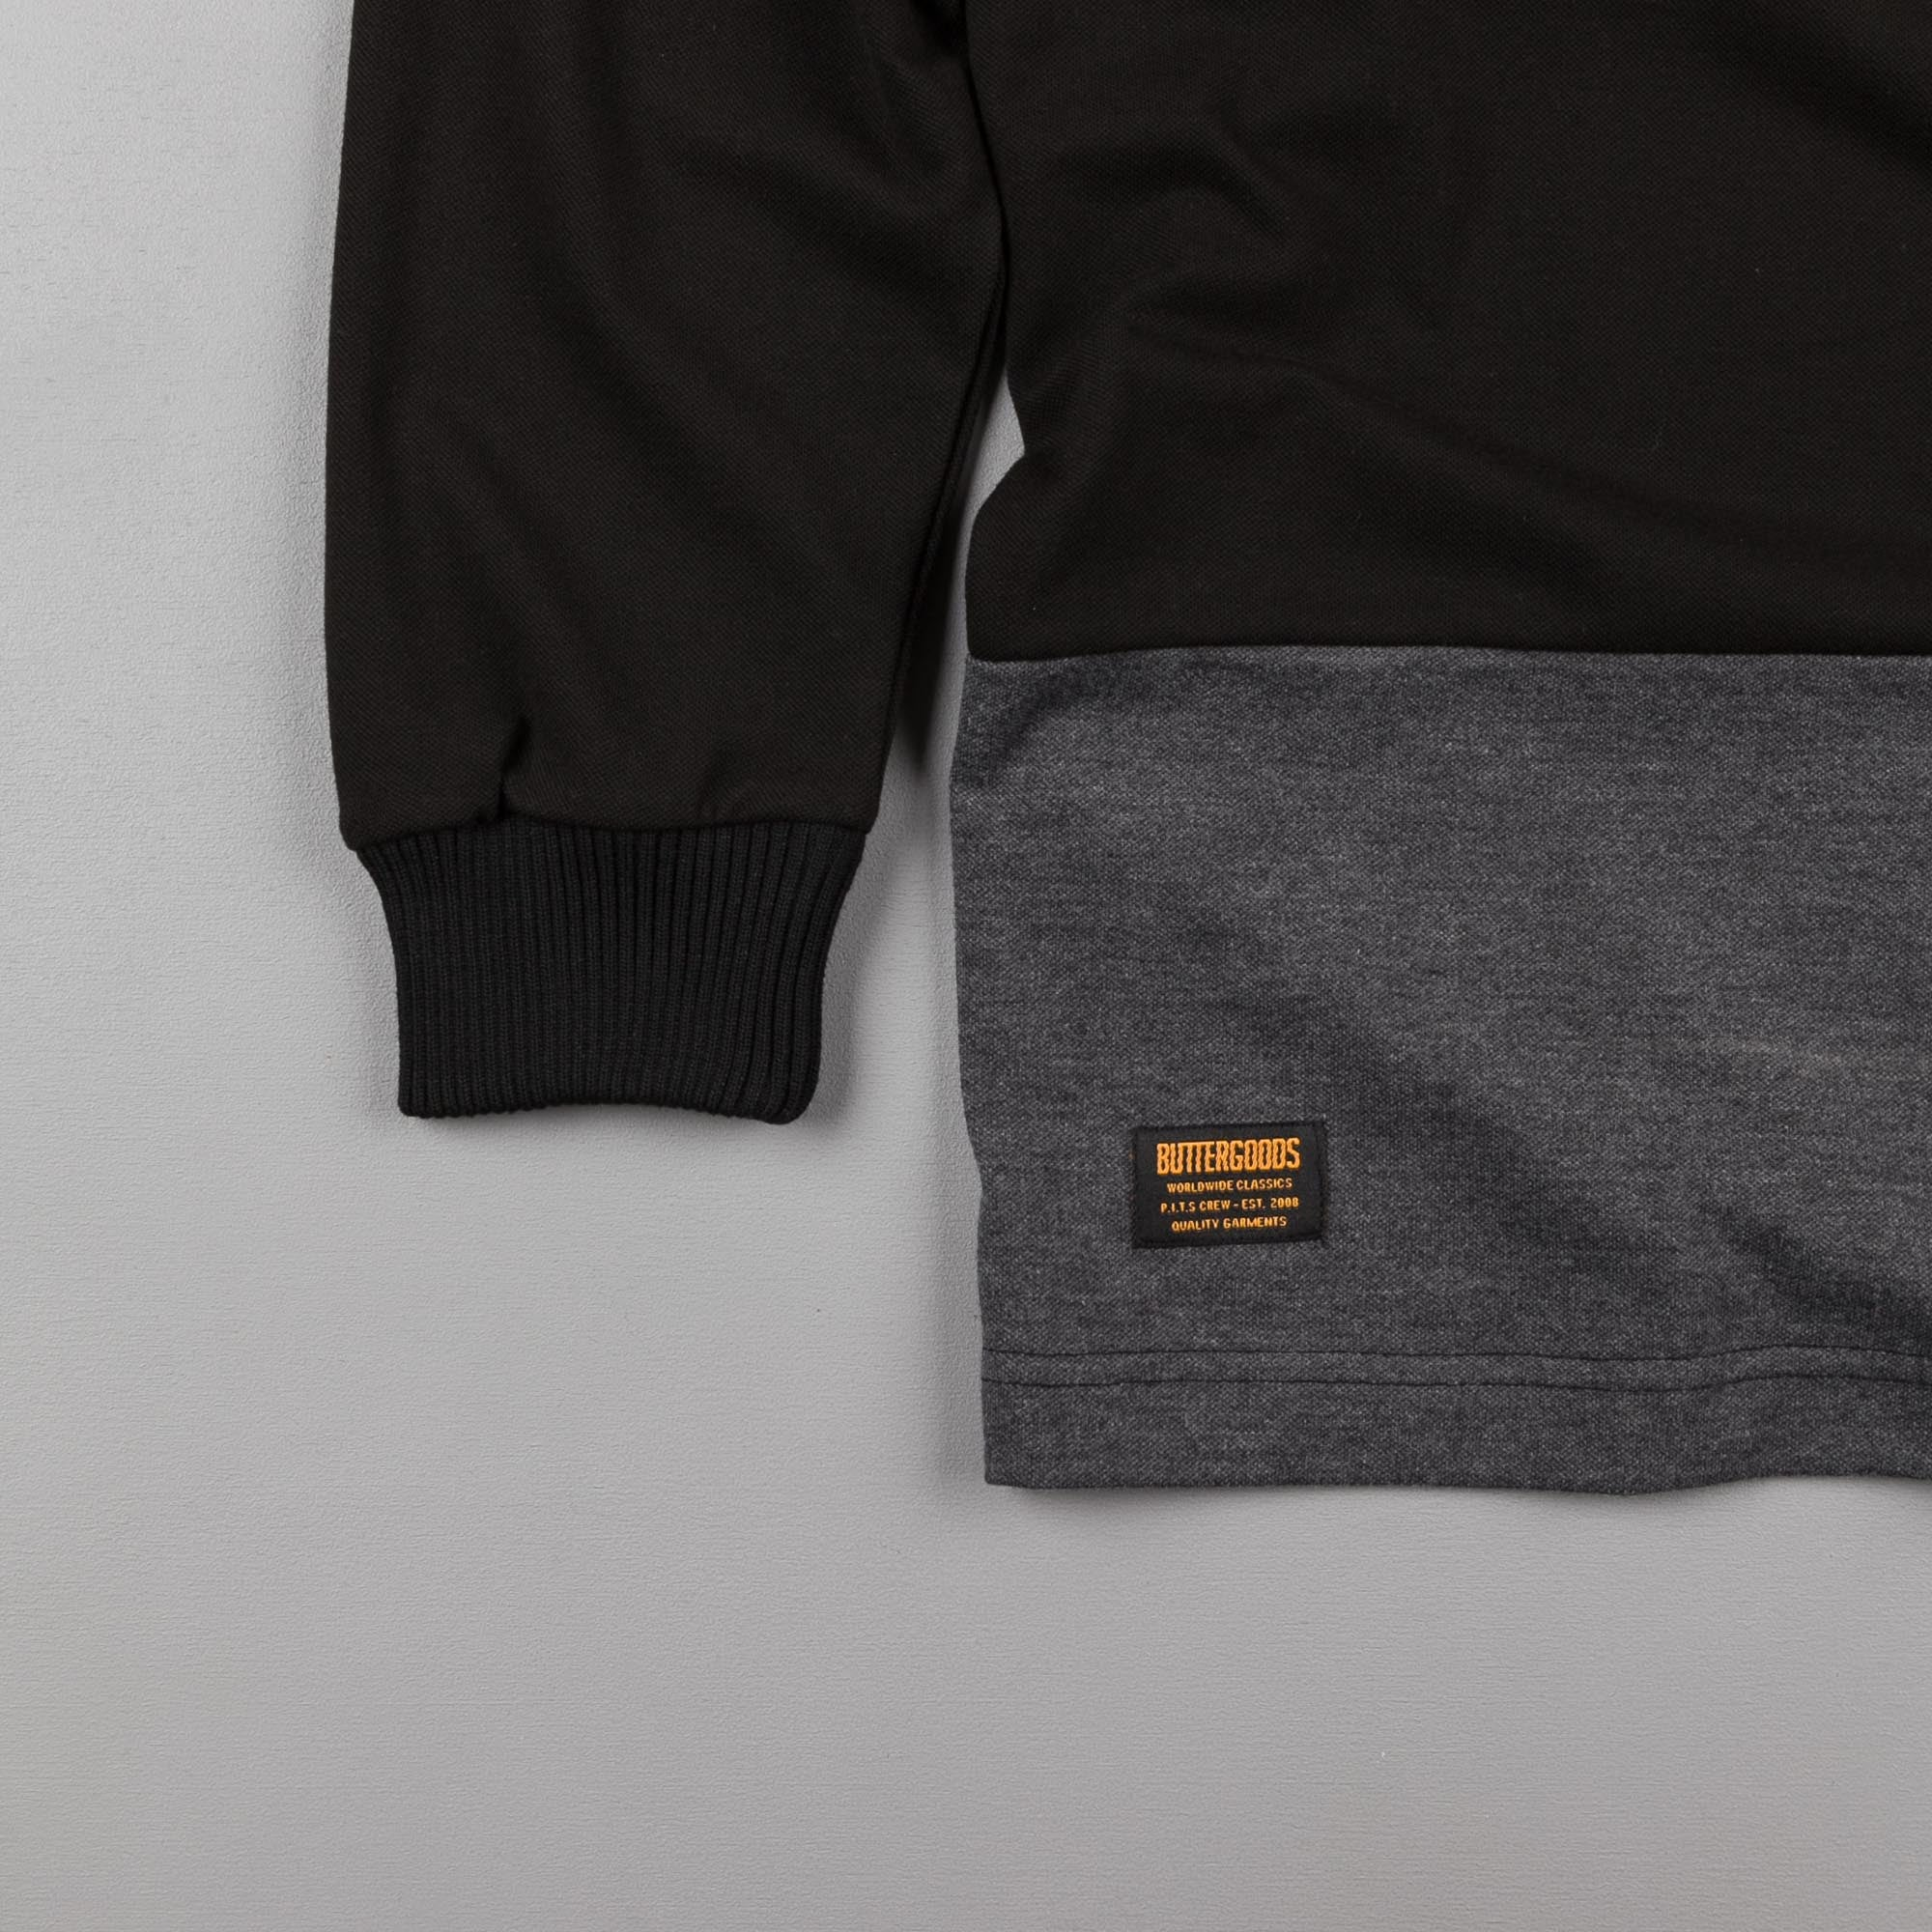 Butter Goods Rose Long Sleeve Polo Shirt - Black / Grey